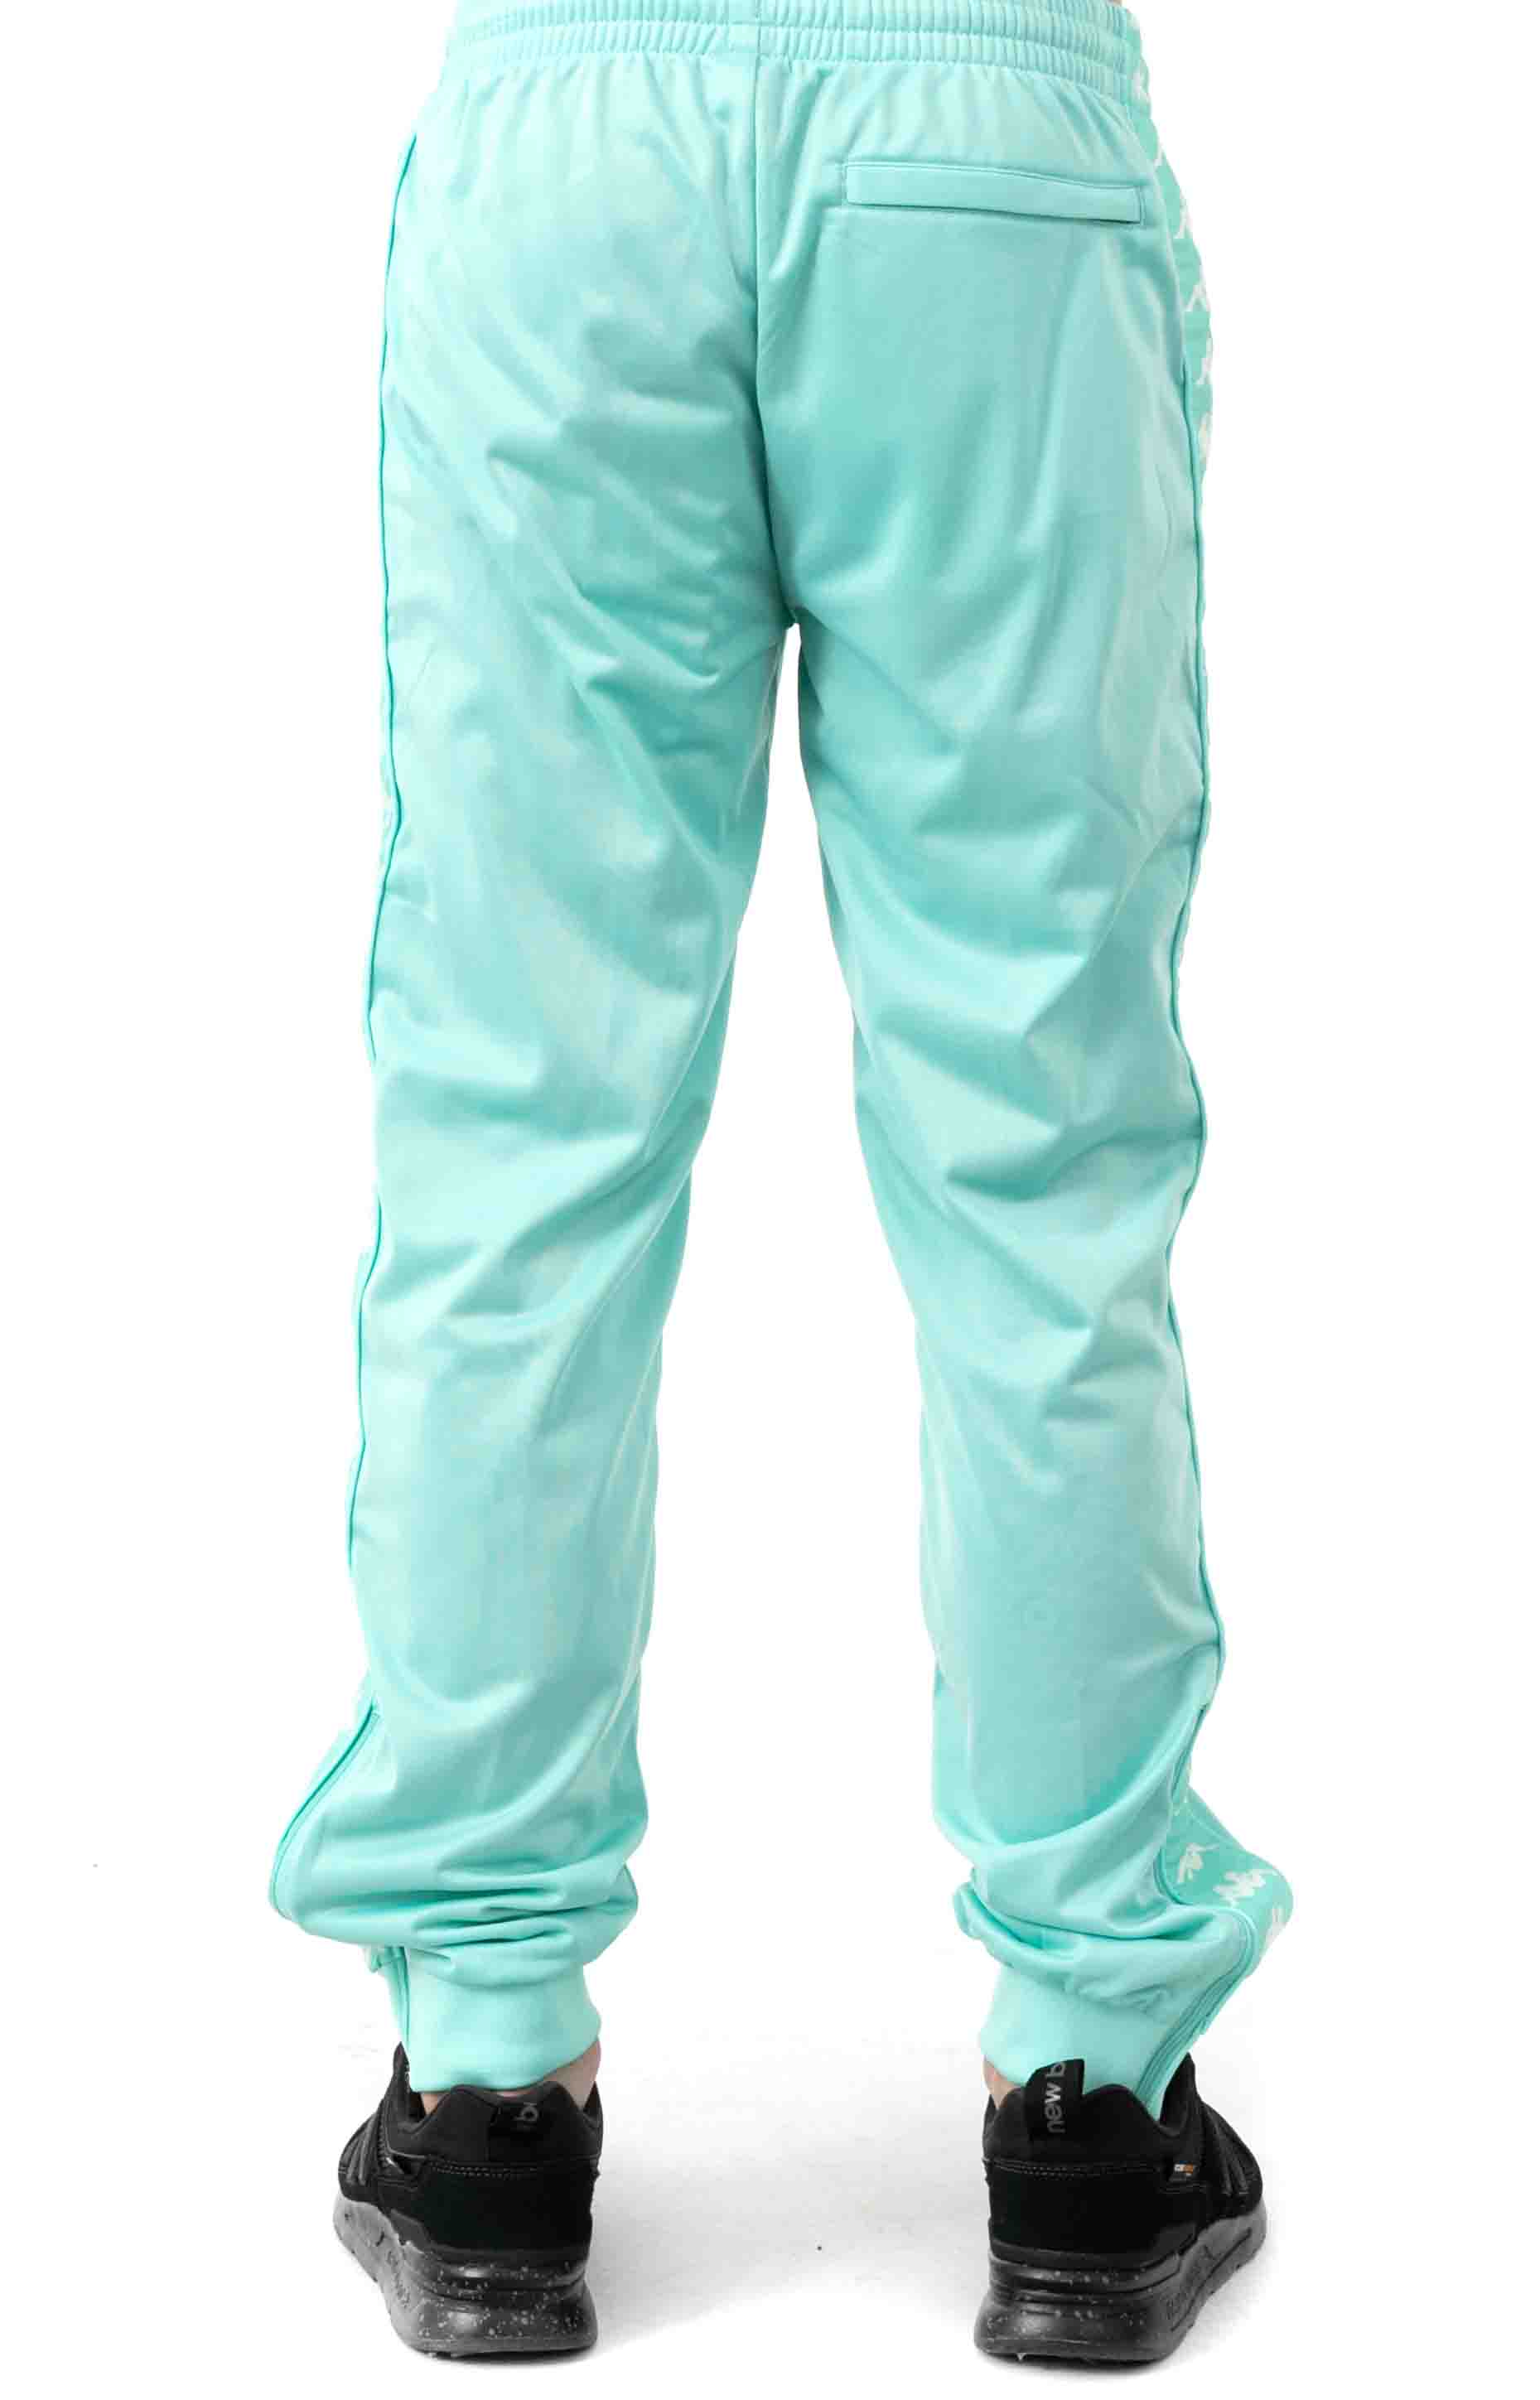 222 Banda Rastoriazz Trackpant - Green Aqua 3